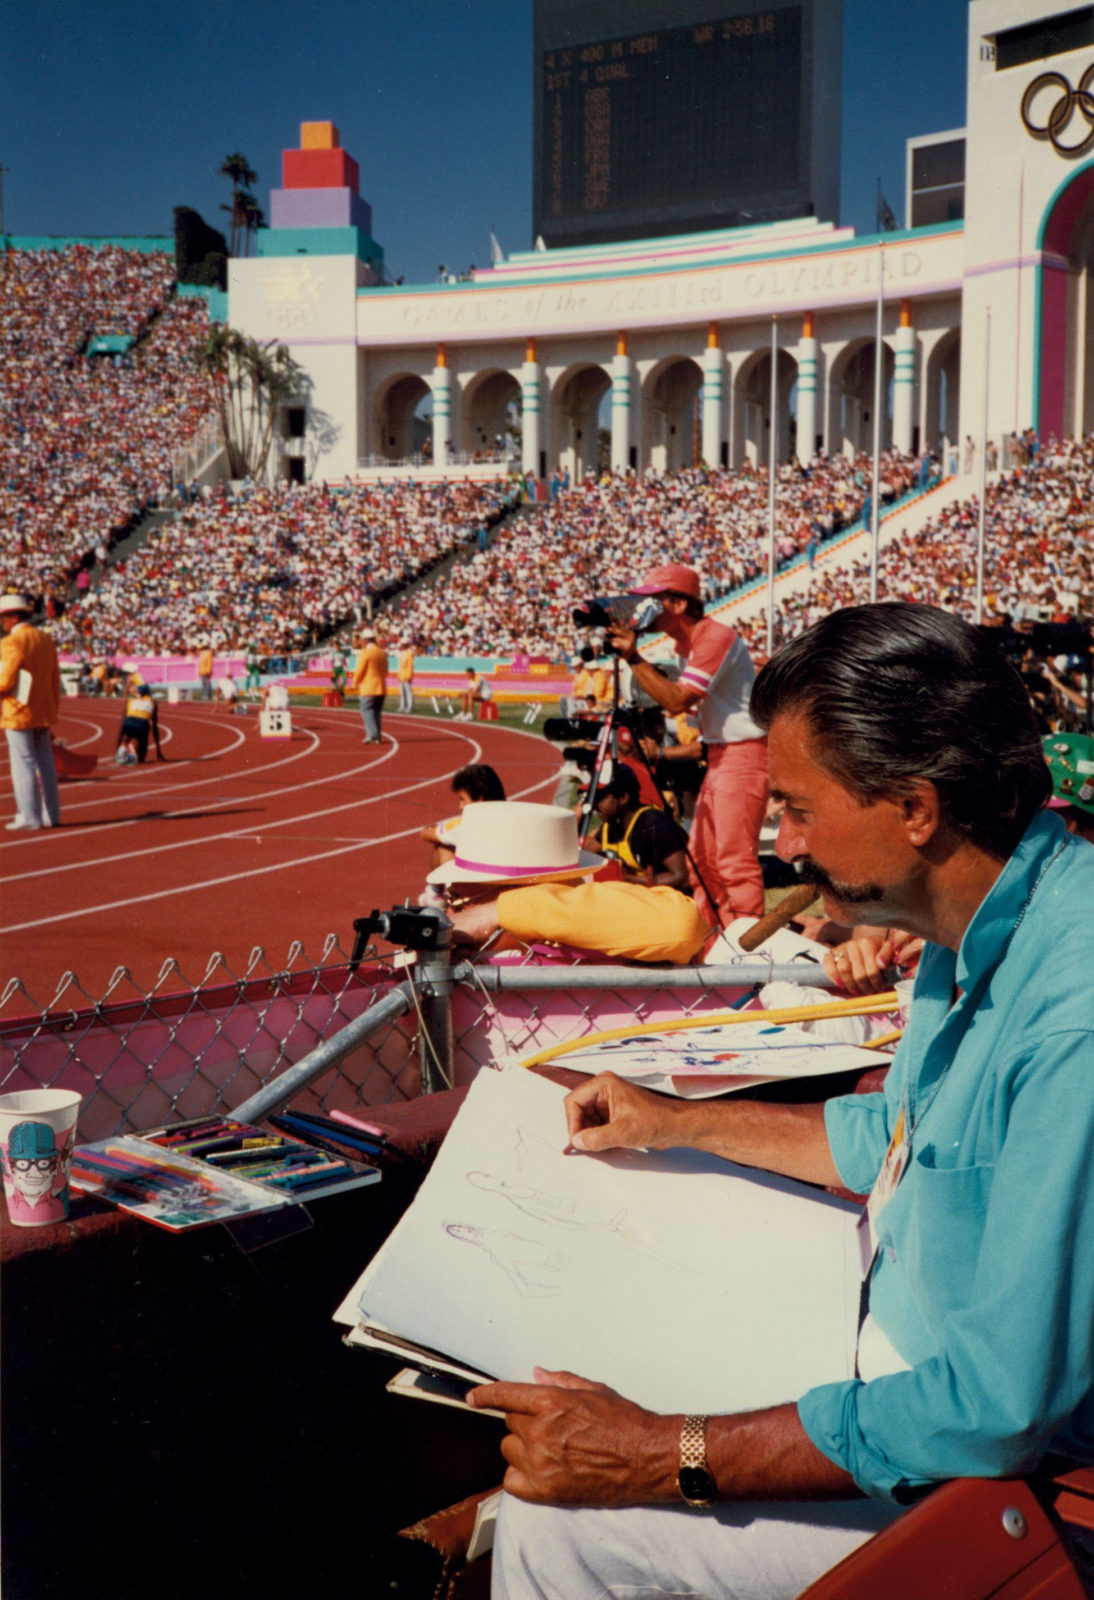 LeRoy Neiman sketching at the 1984 Olympics